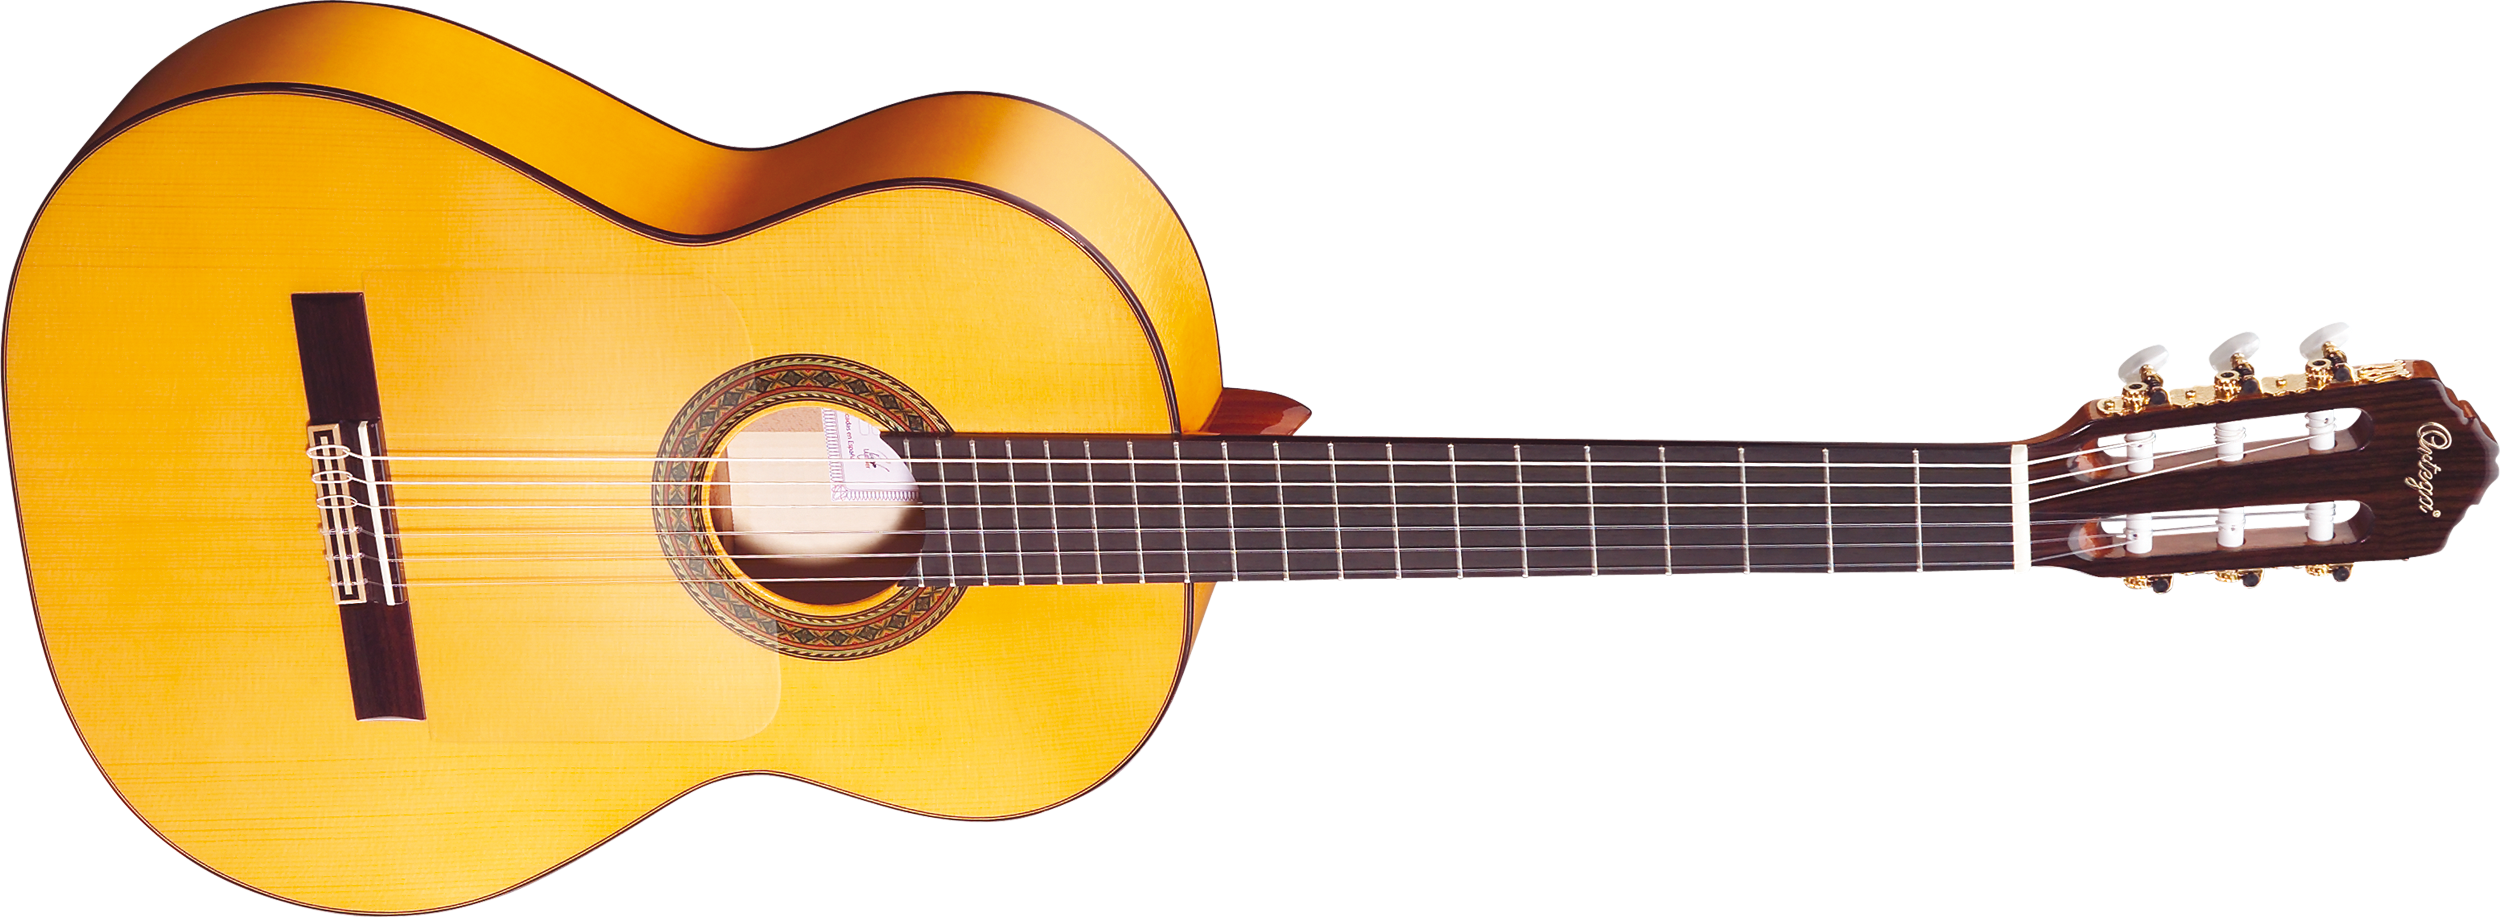 jpg freeuse download Acoustic clipart guitarist. Classic guitar png image